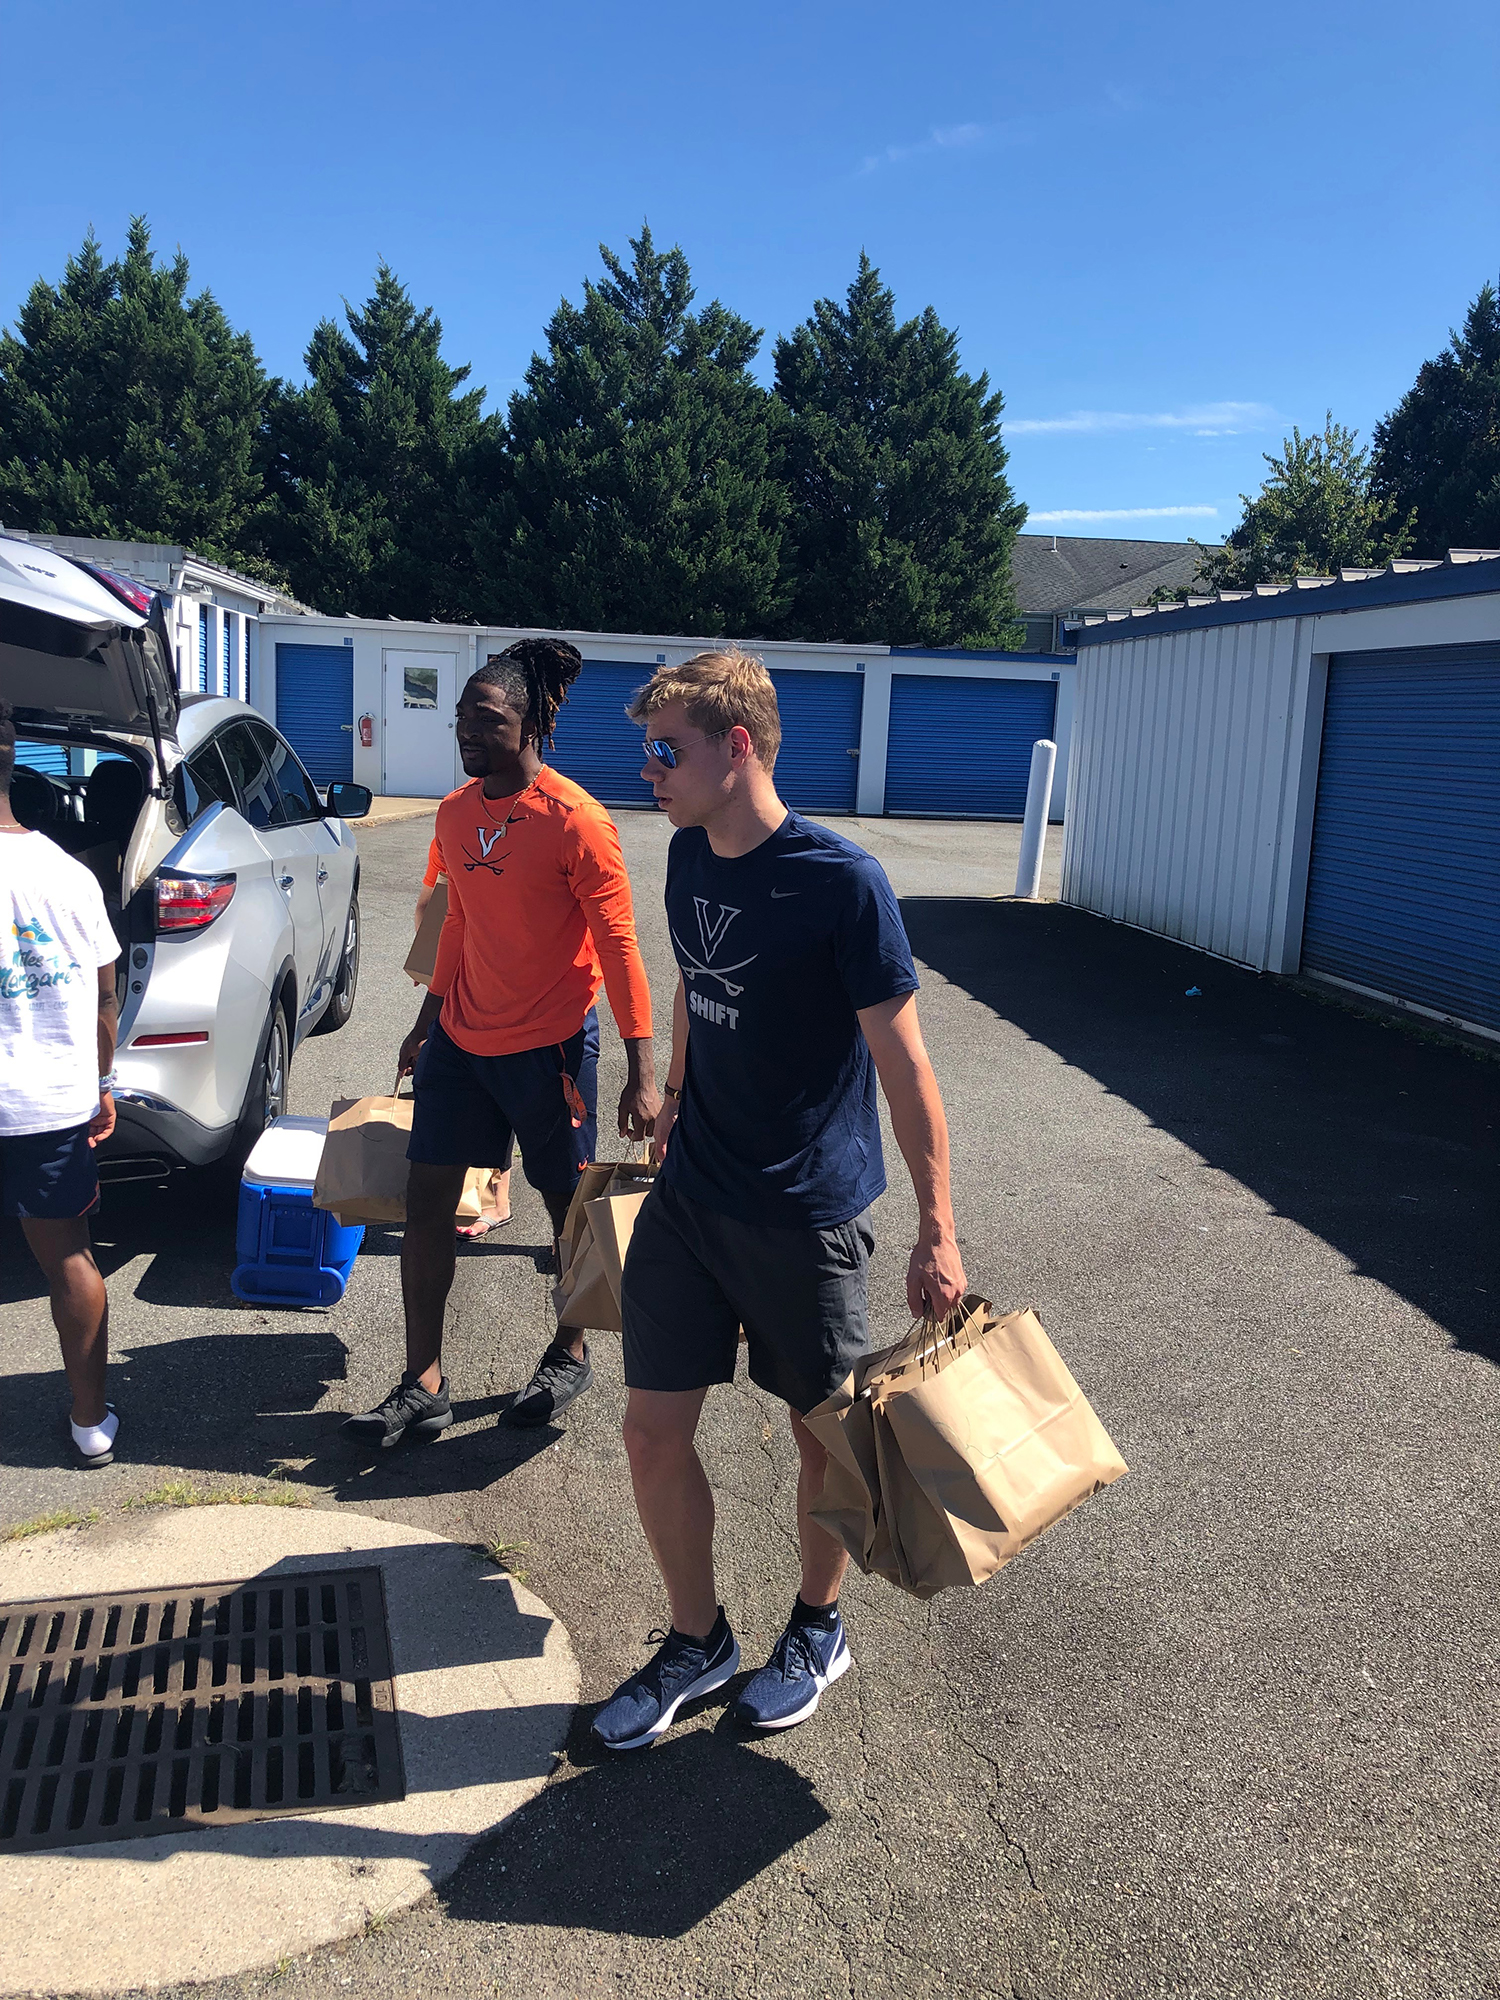 UVA quarterback Bryce Perkins, left, and swimmer Henry Schutte carry bags of books earmarked for kids into a storage unit. (Photo by Whitelaw Reid, University Communications)